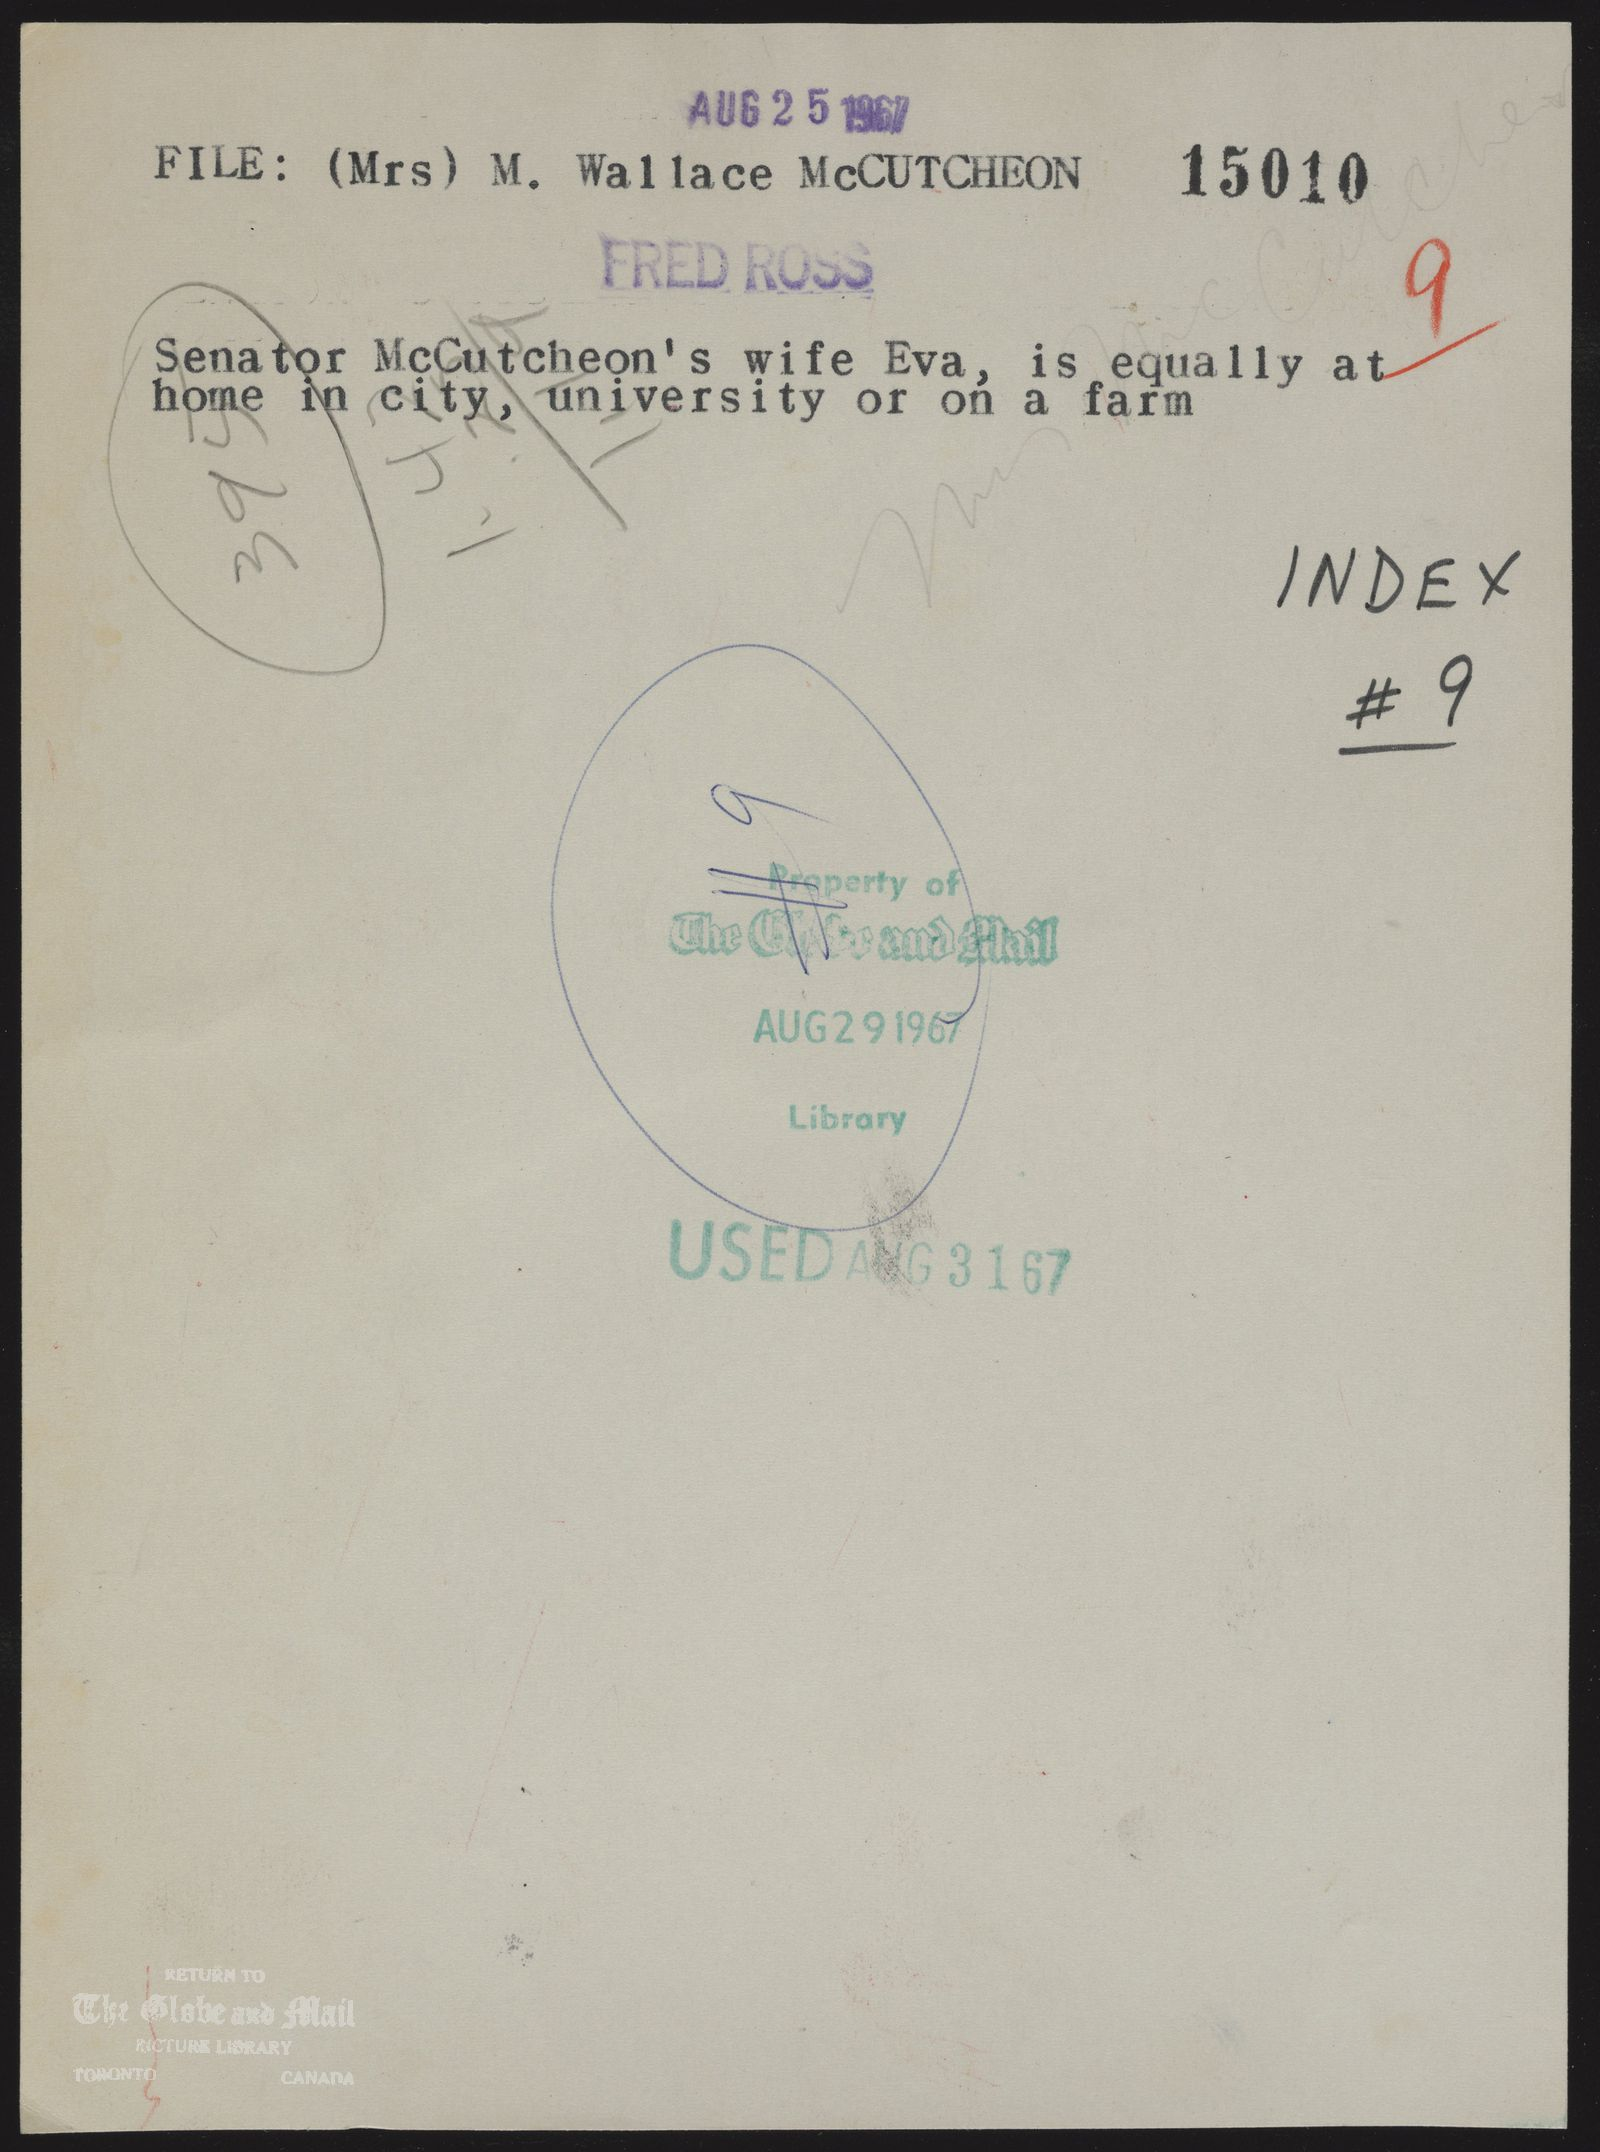 The notes written and typed on the back of this photograph, from the time it was printed, are as follows: (Mrs) M. Wallace McCUTCHEON,Senator McCutcheon's wife Eva, is equally at home in city, university or on a farmAugust 25, 1967,FRED ROSS